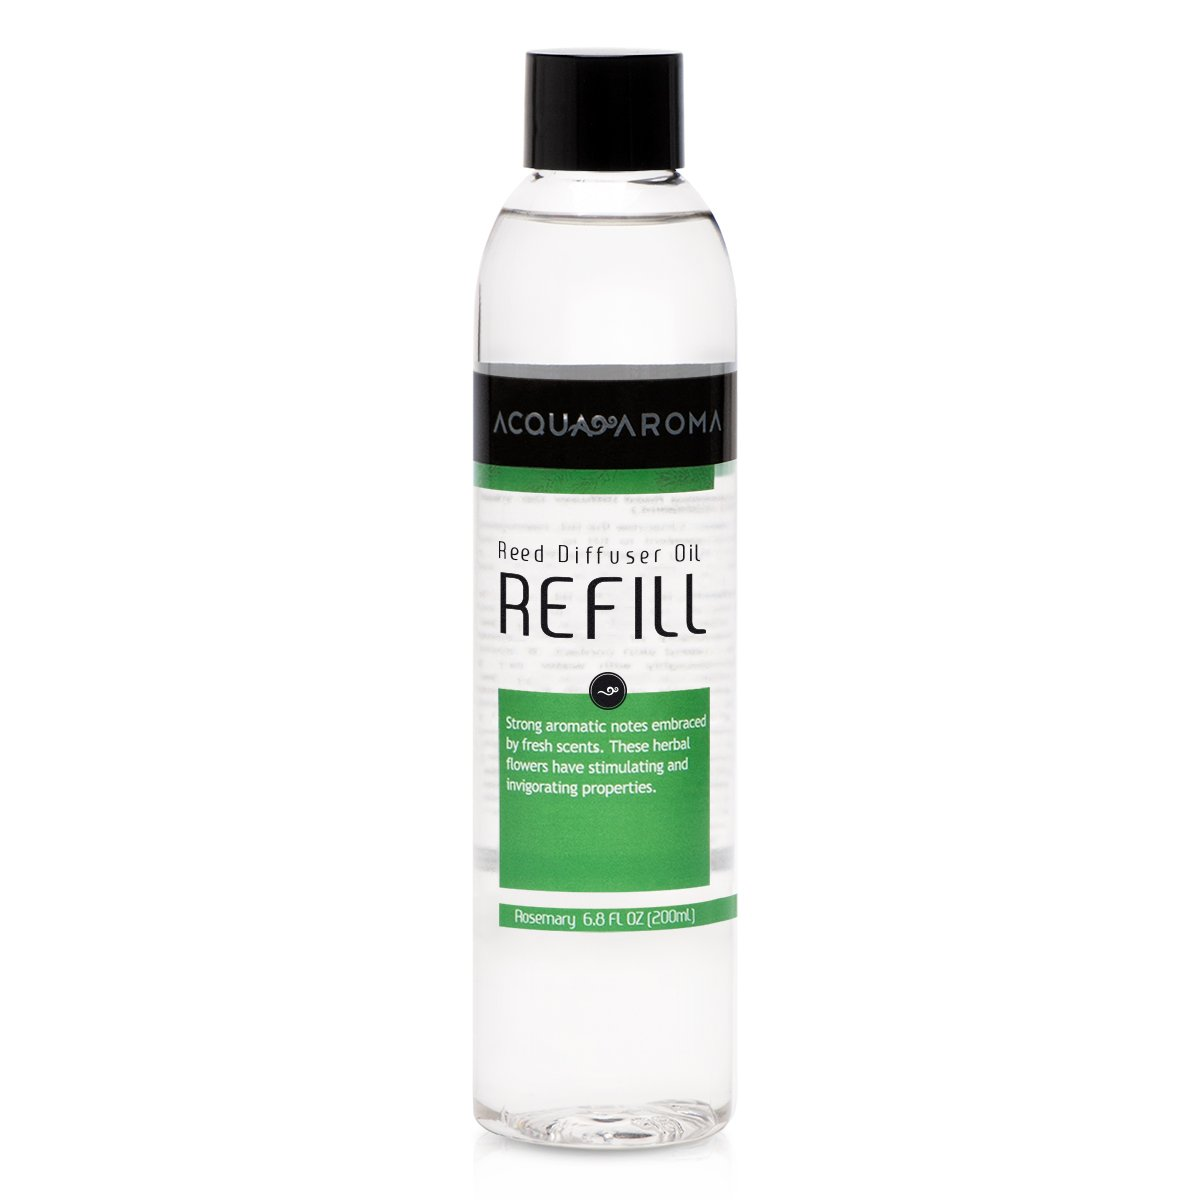 Acqua Aroma Rosemary Reed Diffuser Oil Refill 6.8 FL OZ (200ml) Contains Essencial Oils